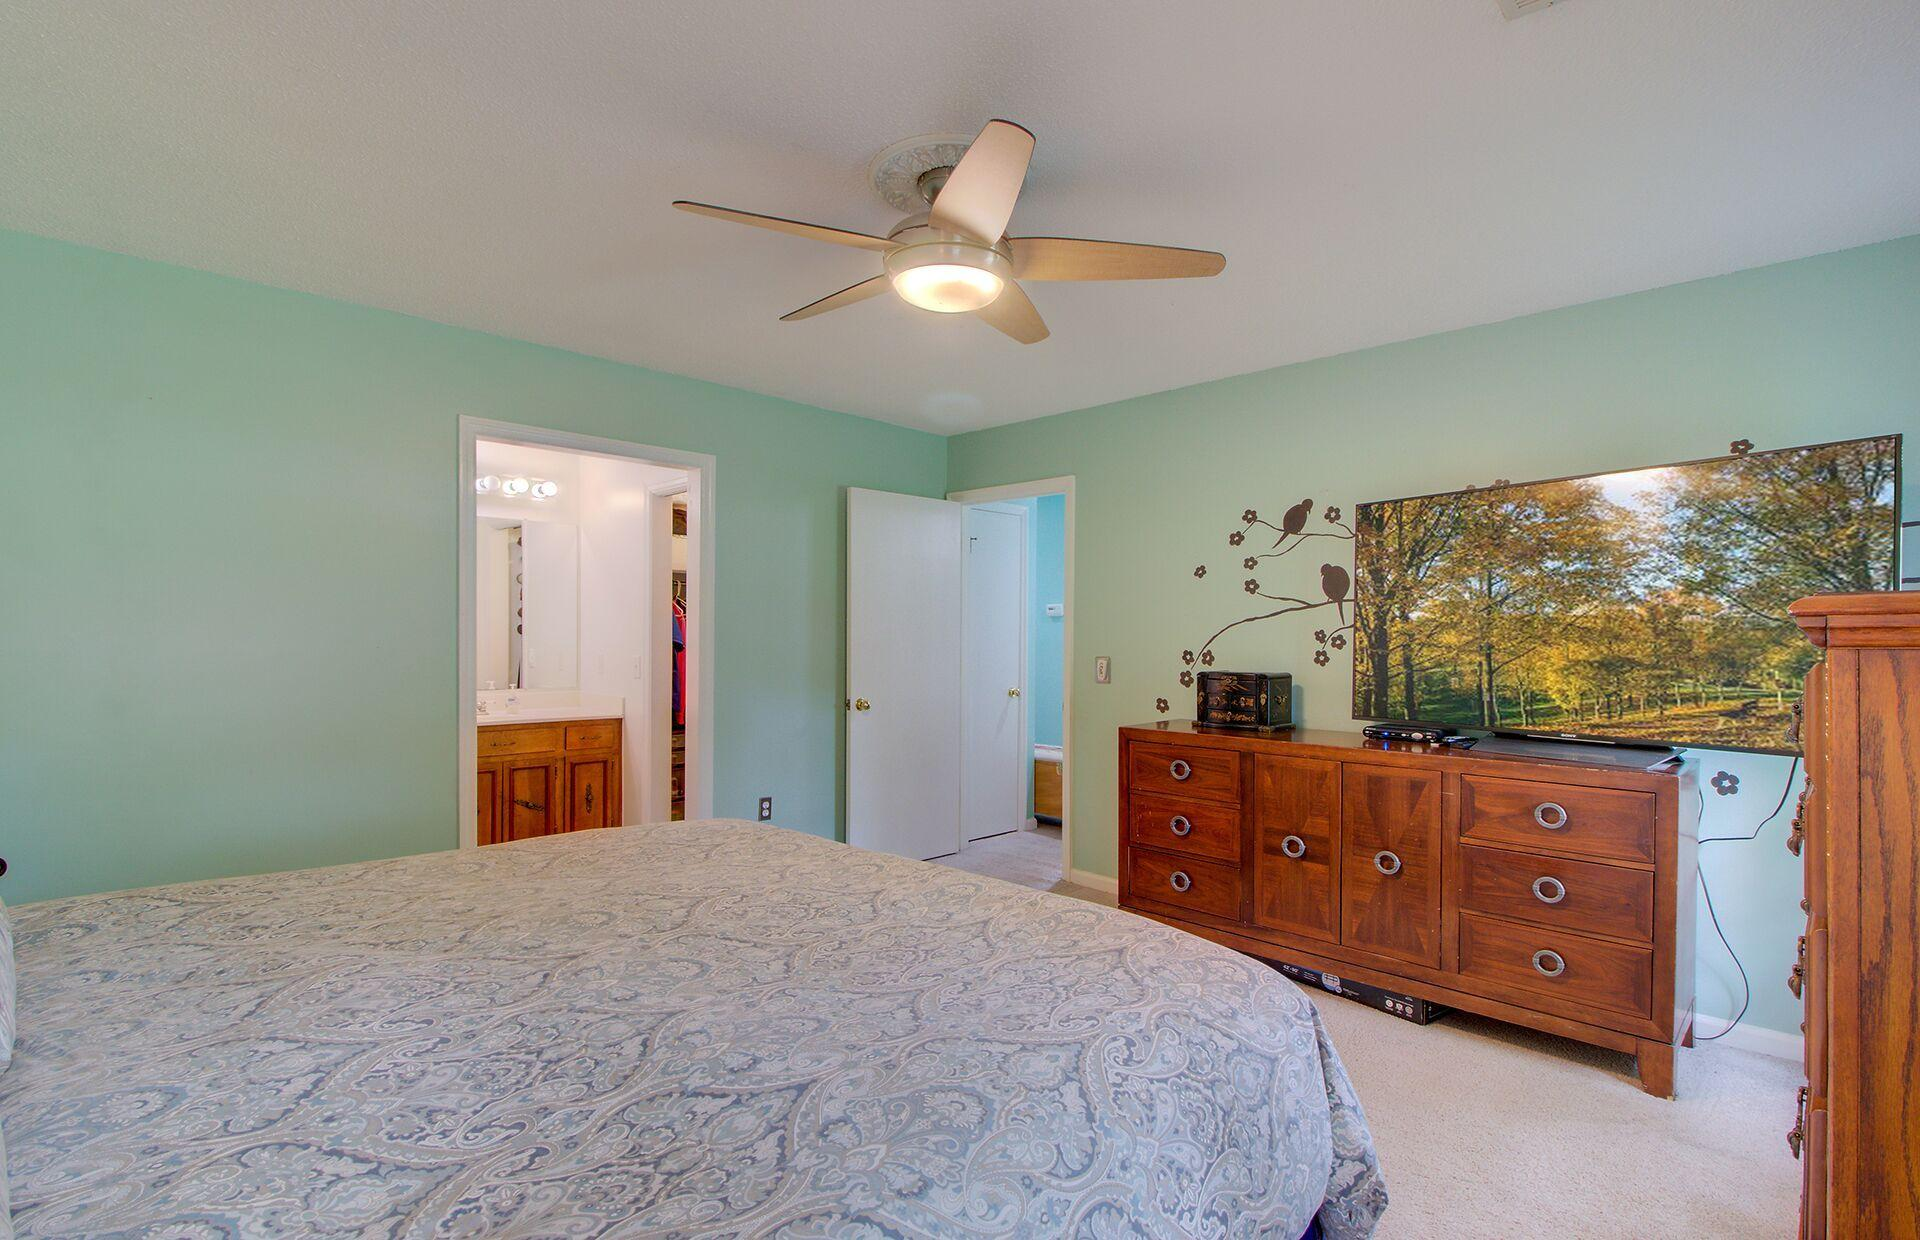 Lockwood Hall Homes For Sale - 873 Piccadilly, Charleston, SC - 9